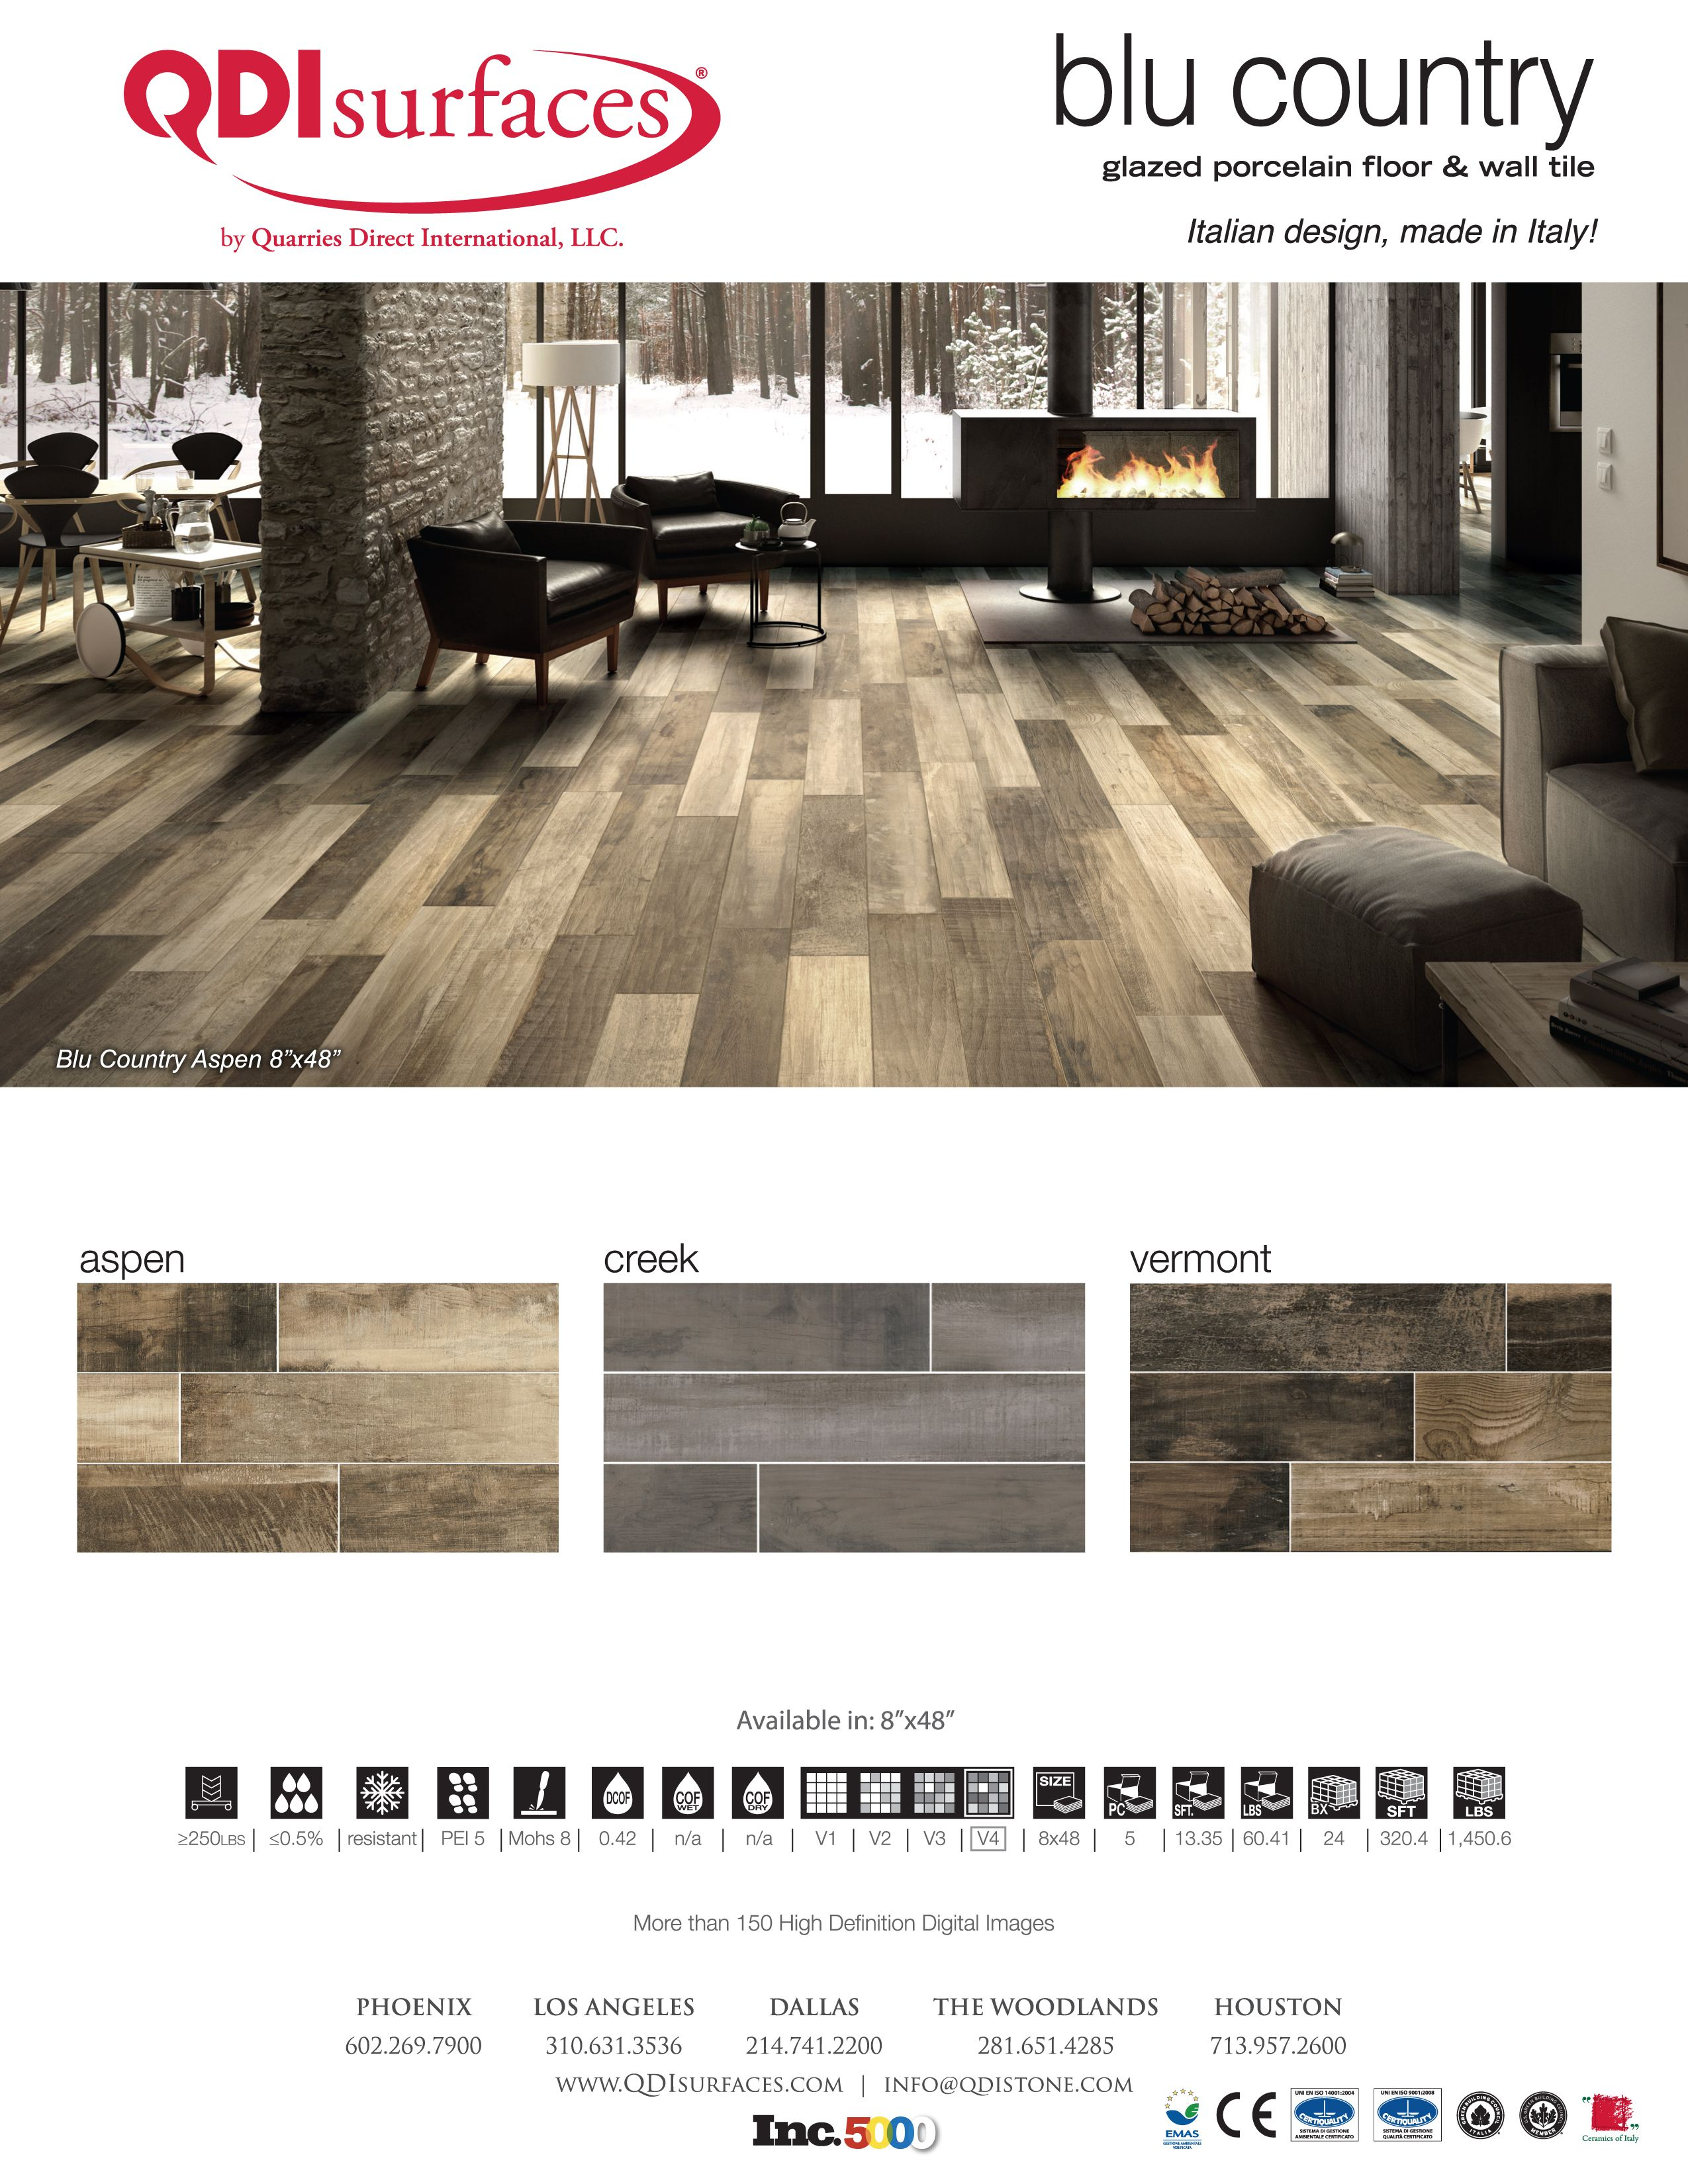 Blu Country Pressed Porcelain Tile Collection Porcelain Flooring Porcelain Tile Italian Design